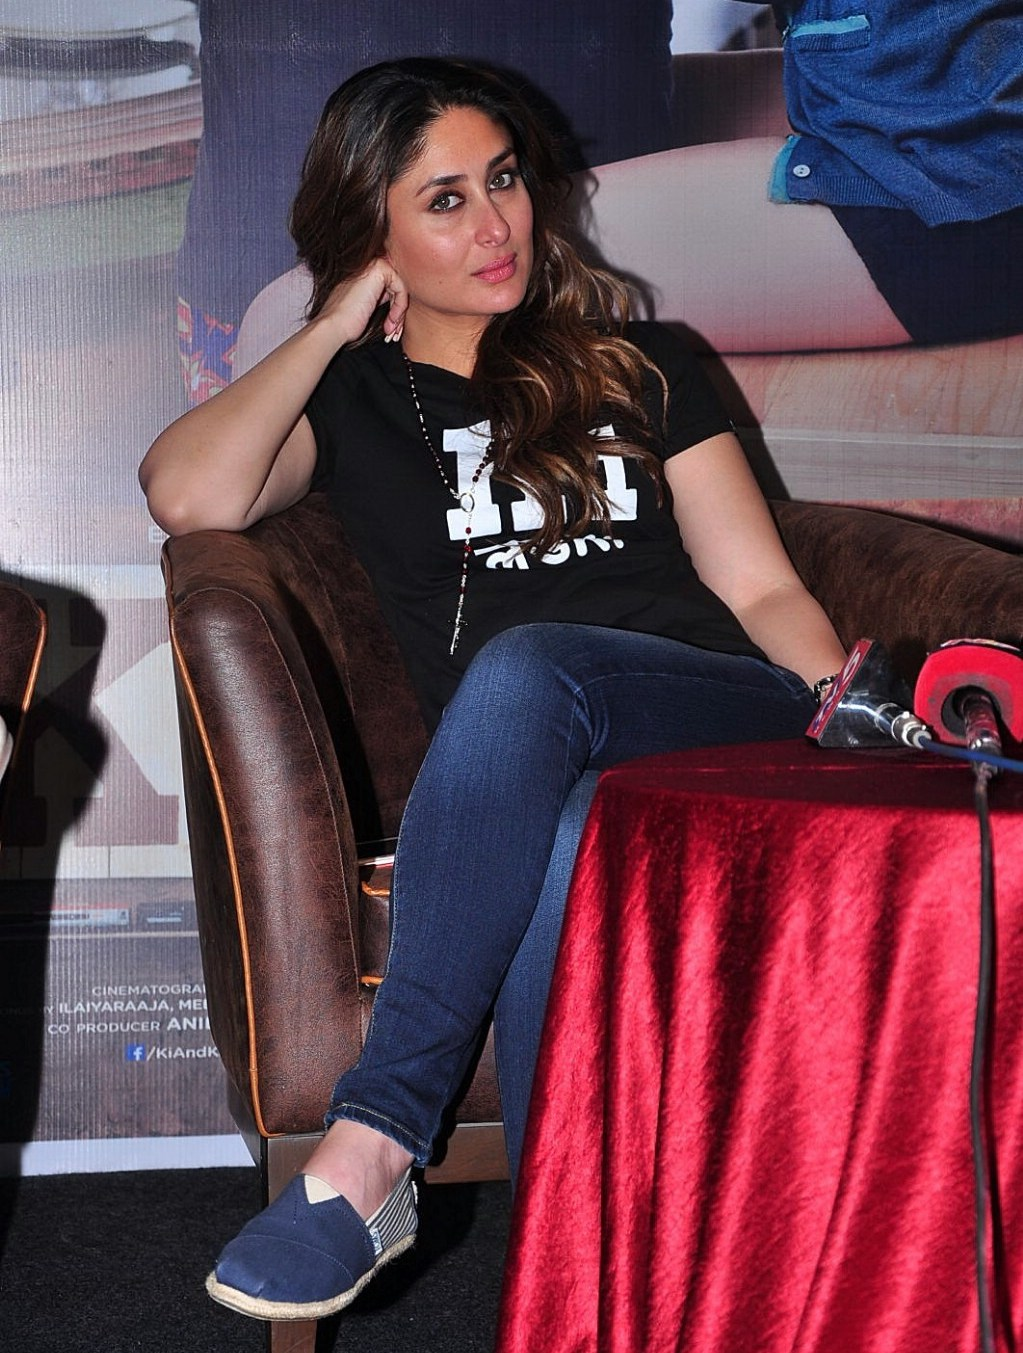 Kareena Kapoor Looks Super SexyIn Tight Blue Jeans and Black Shirt At Film u201cKi and Ka ...